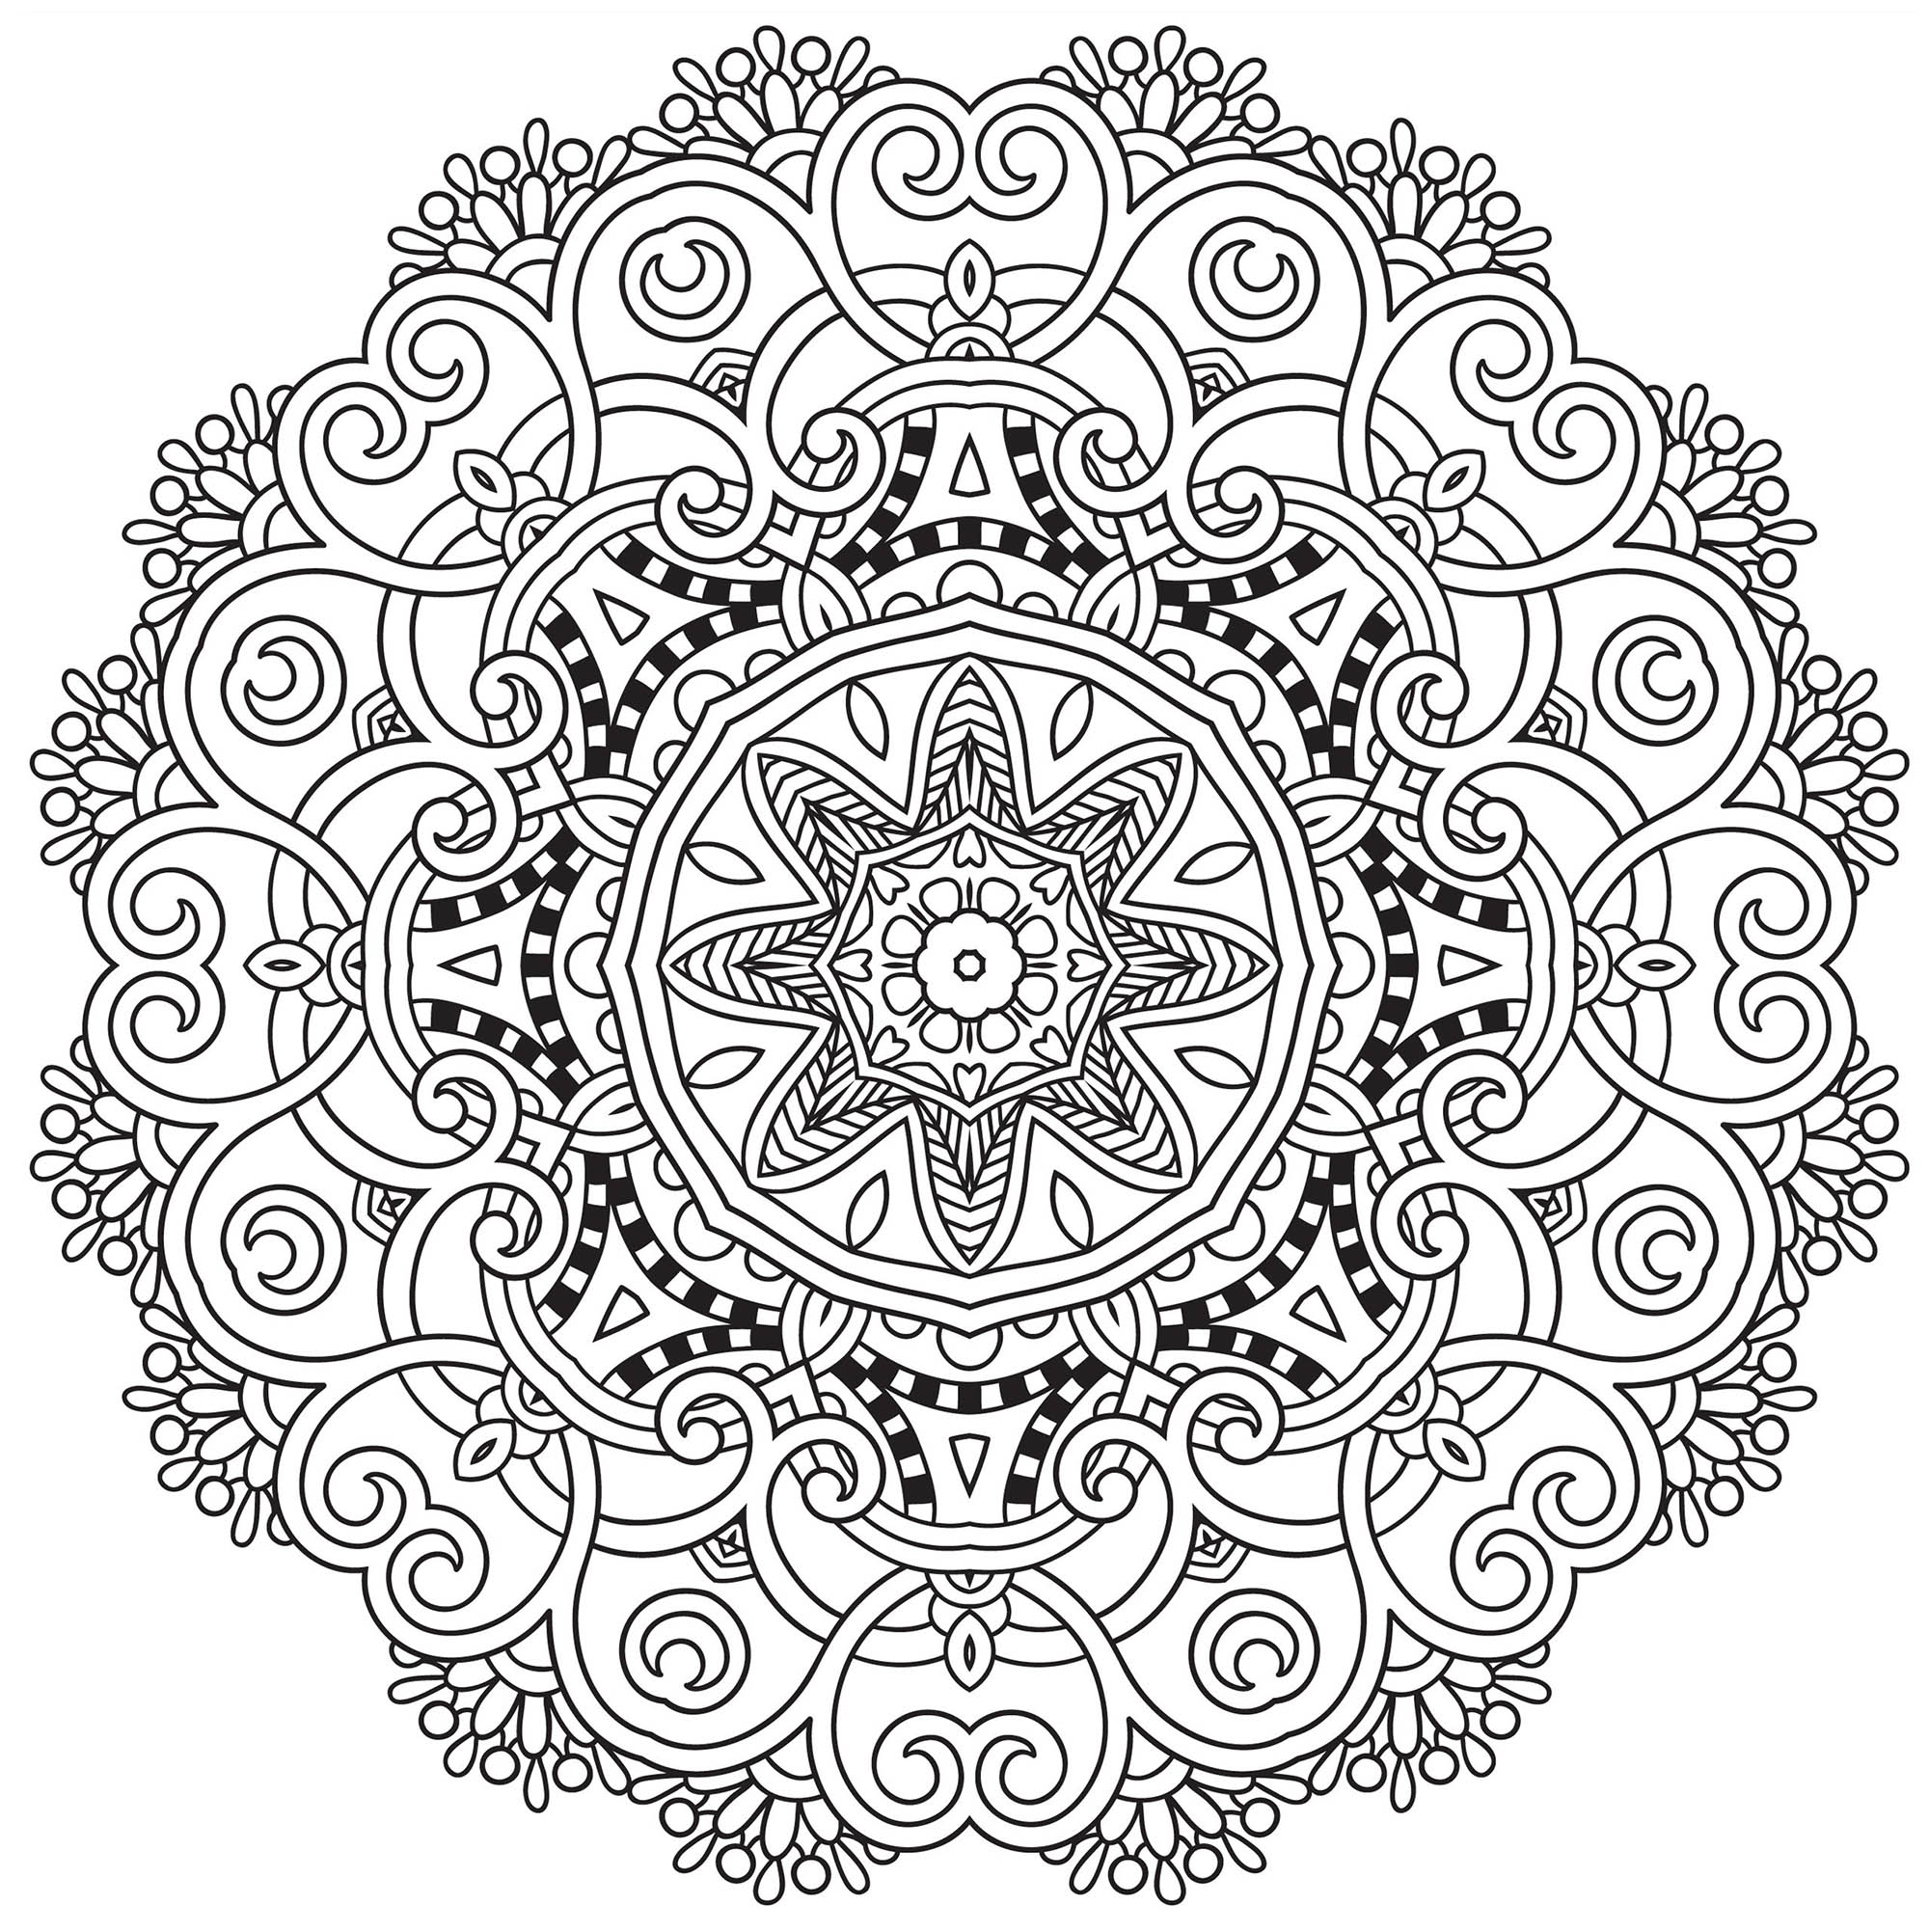 Hard mandala coloring pages for adults - Mandala To Download Spring Free To Print